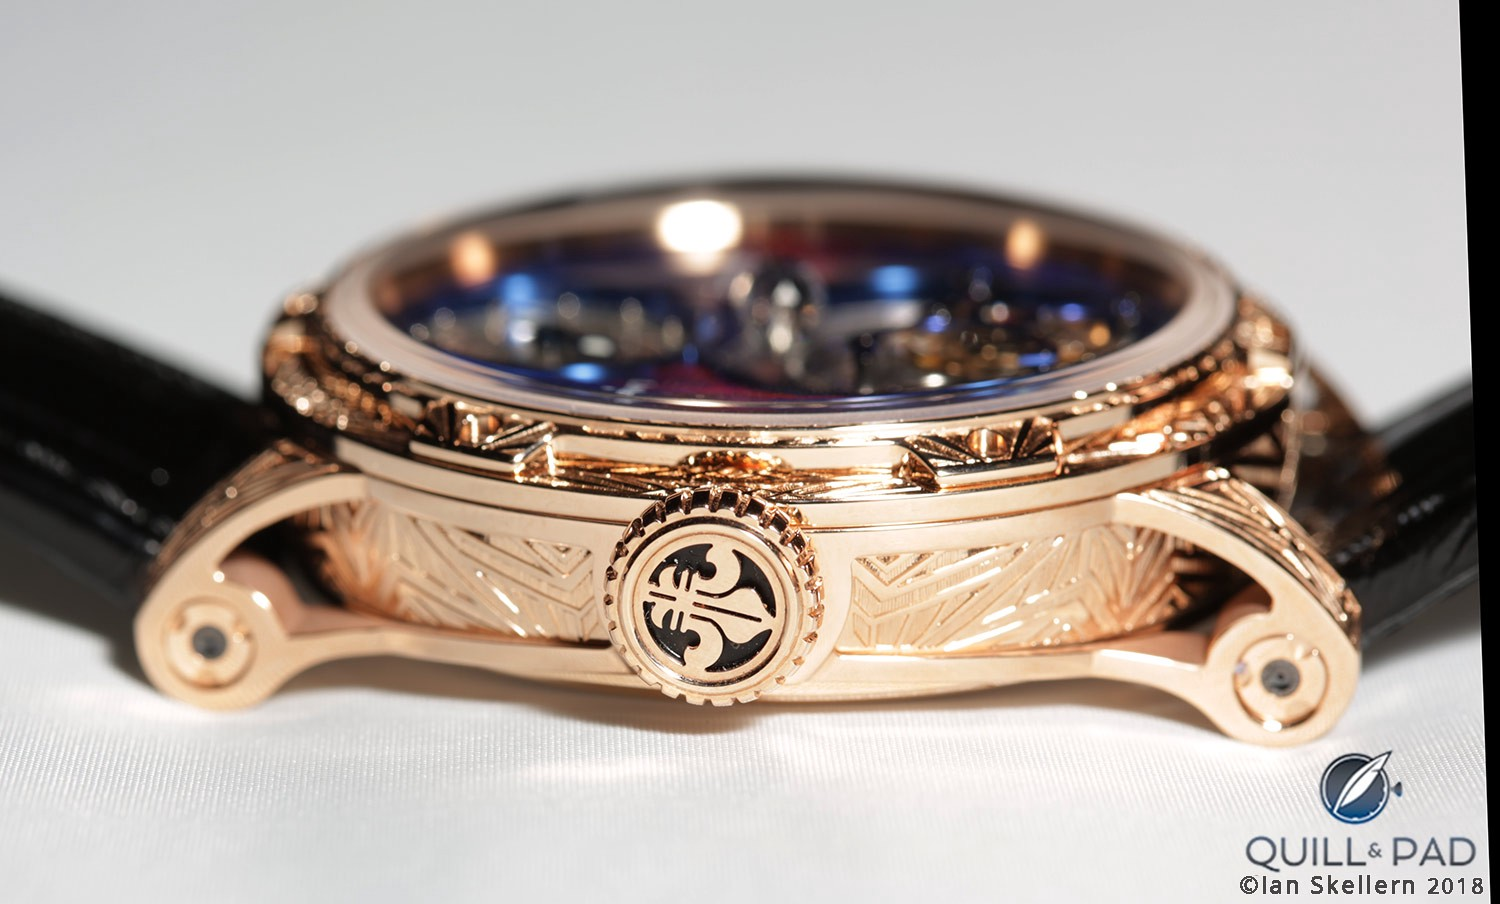 Engraved bezel, caseband and crown of the Louis Moinet Spacewalker